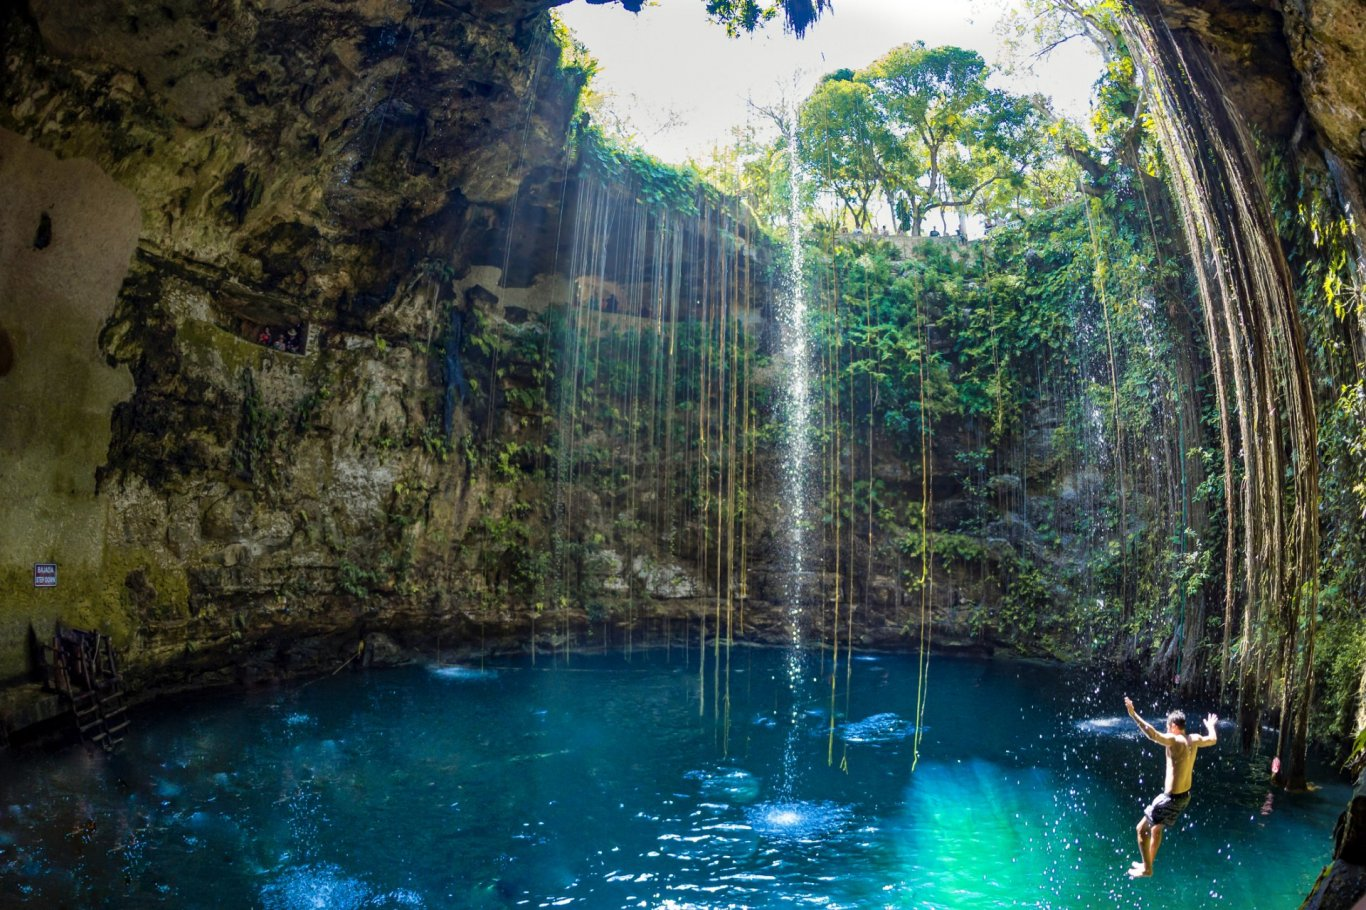 Mexican Cenote - blue water surrounded by limestone rock with man mid air jumping in the water